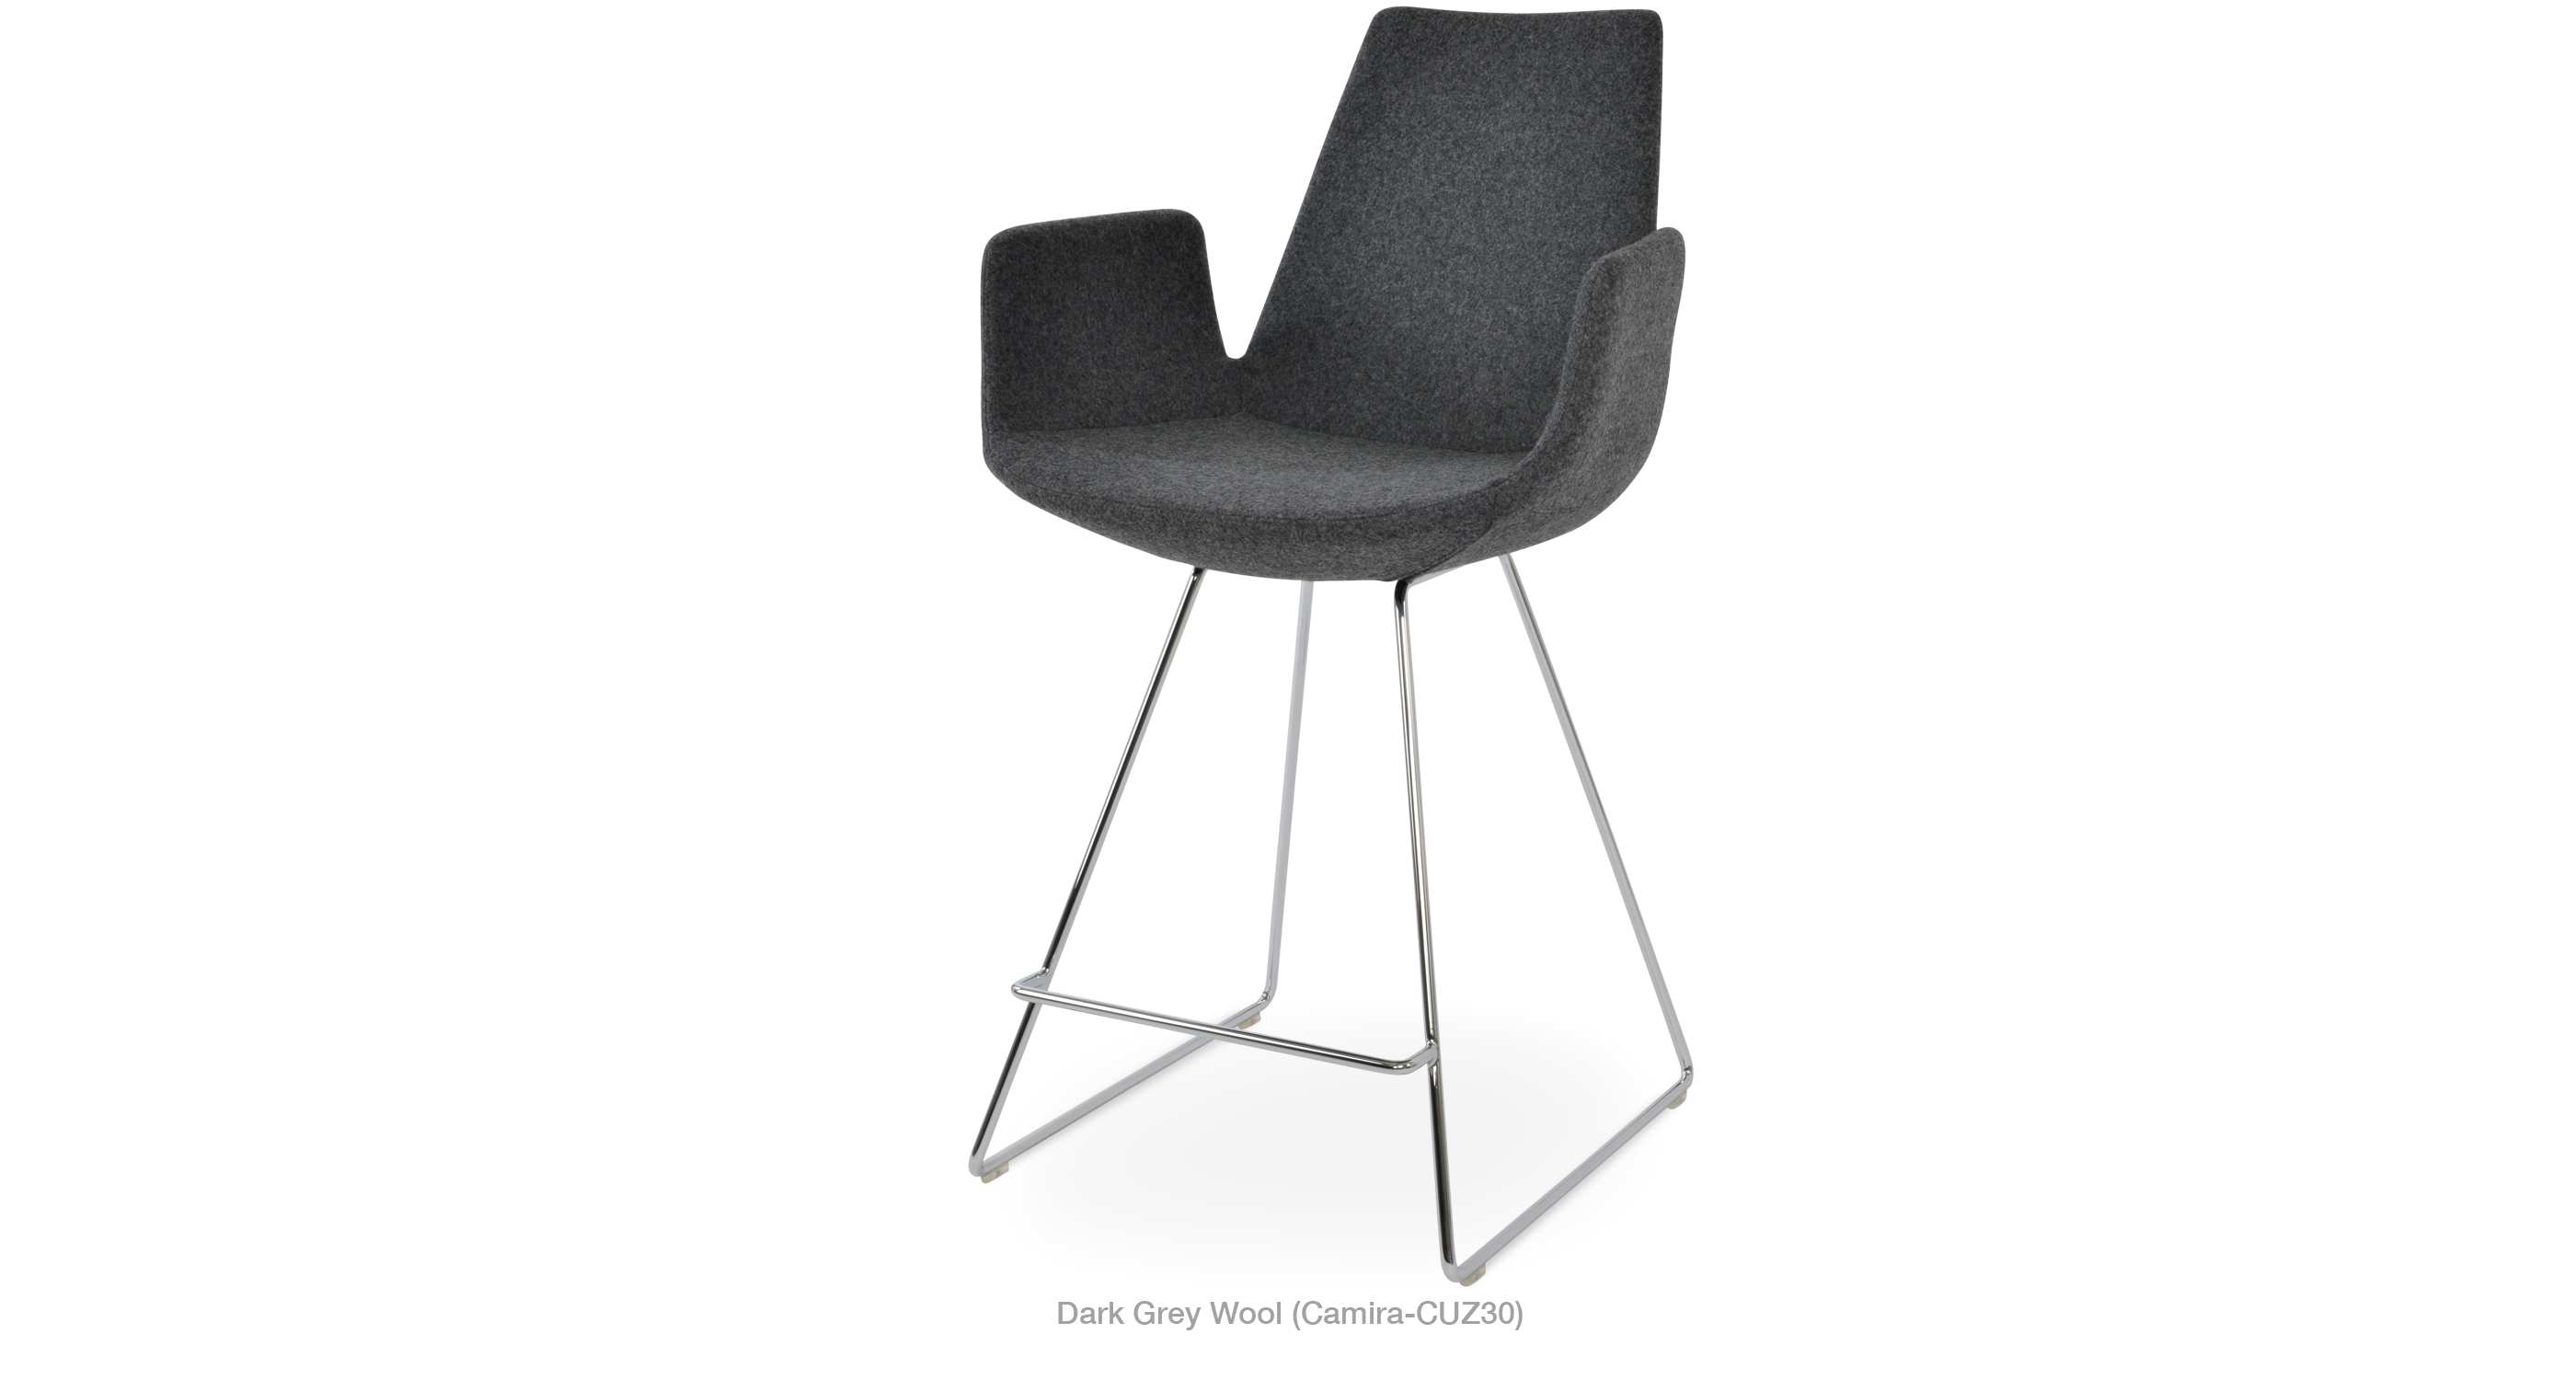 2020 03 05 Eiffel Arm Wire Stool Dark Grey